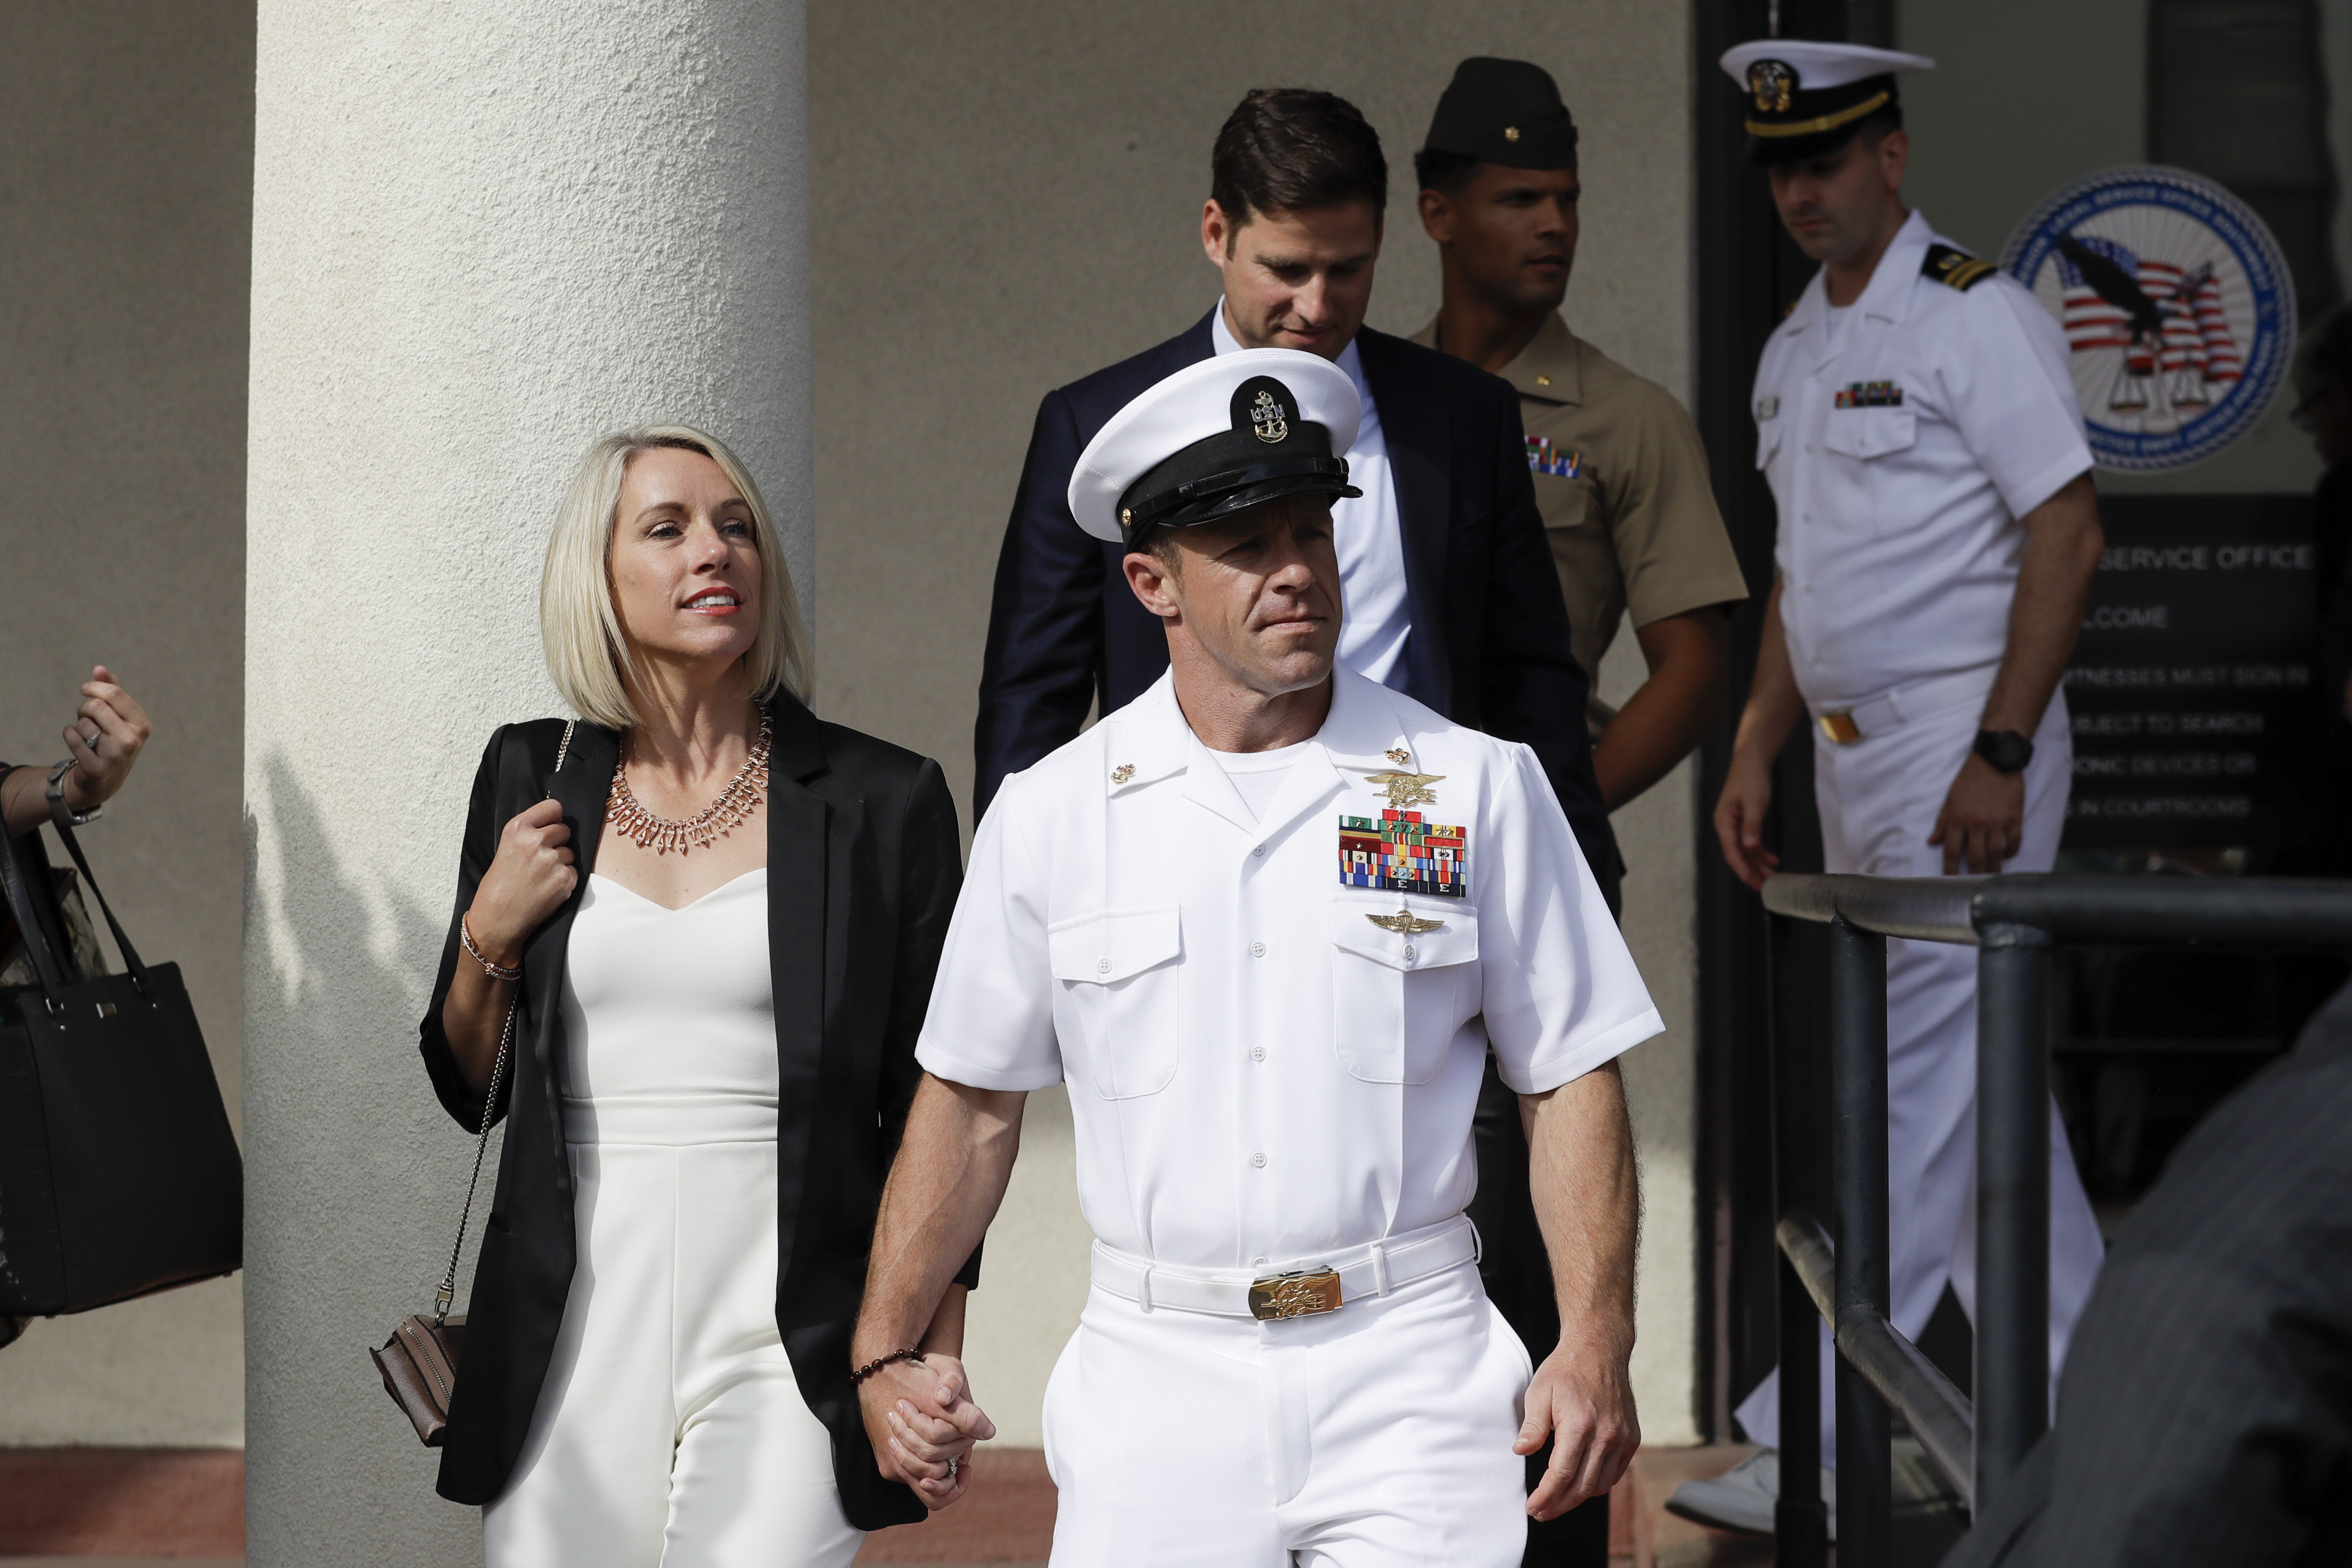 Navy Special Operations Chief Edward Gallagher, center, walks with his wife, Andrea Gallagher, as they leave a military court in San Diego in July.